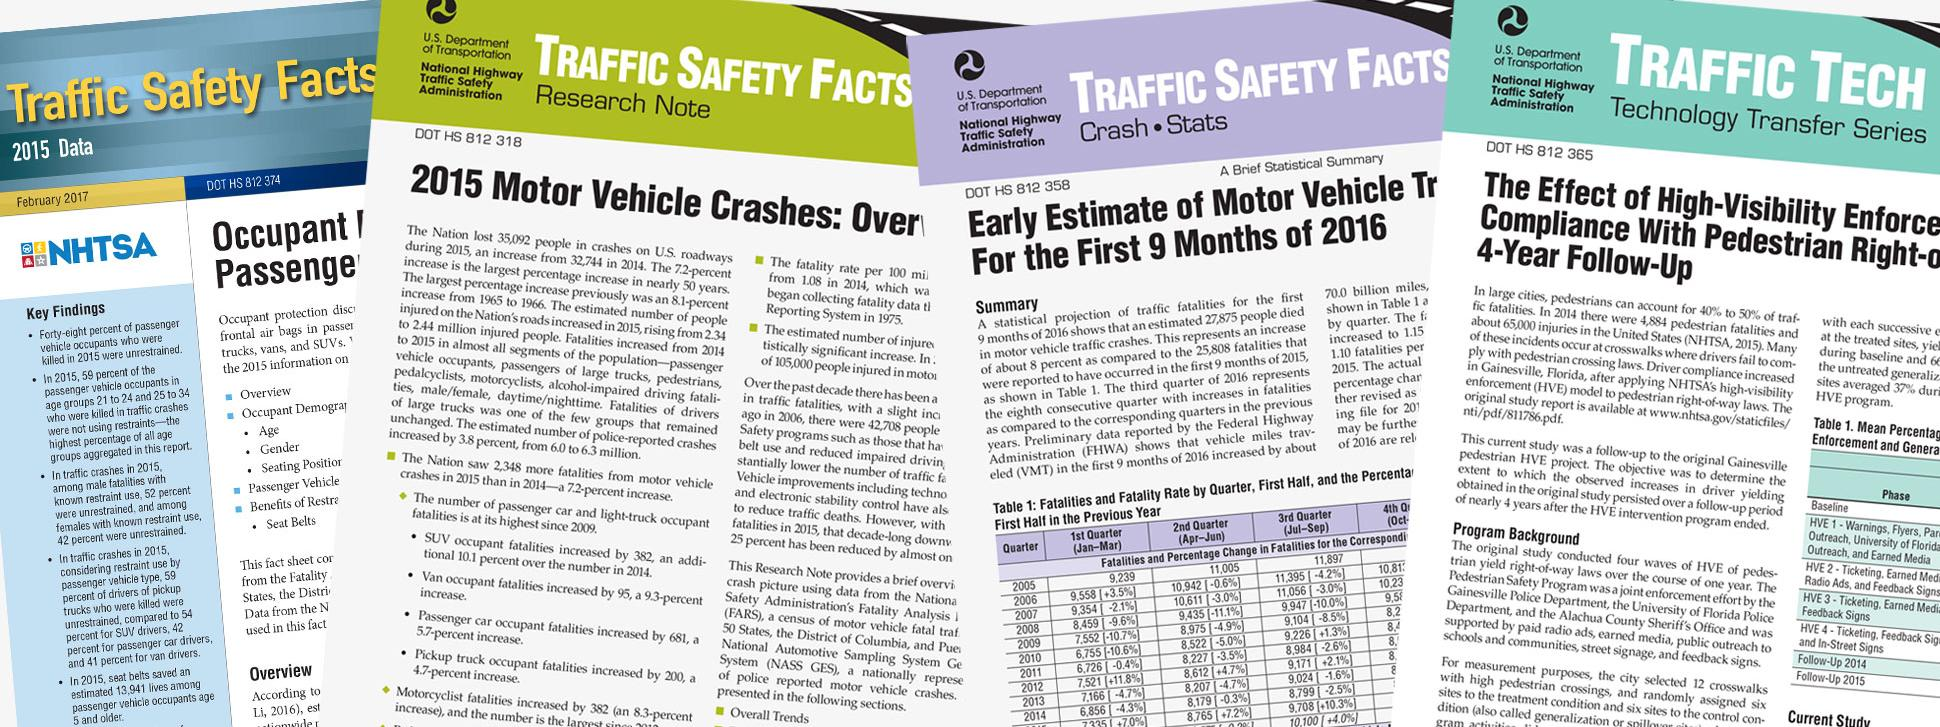 Traffic Safety Facts